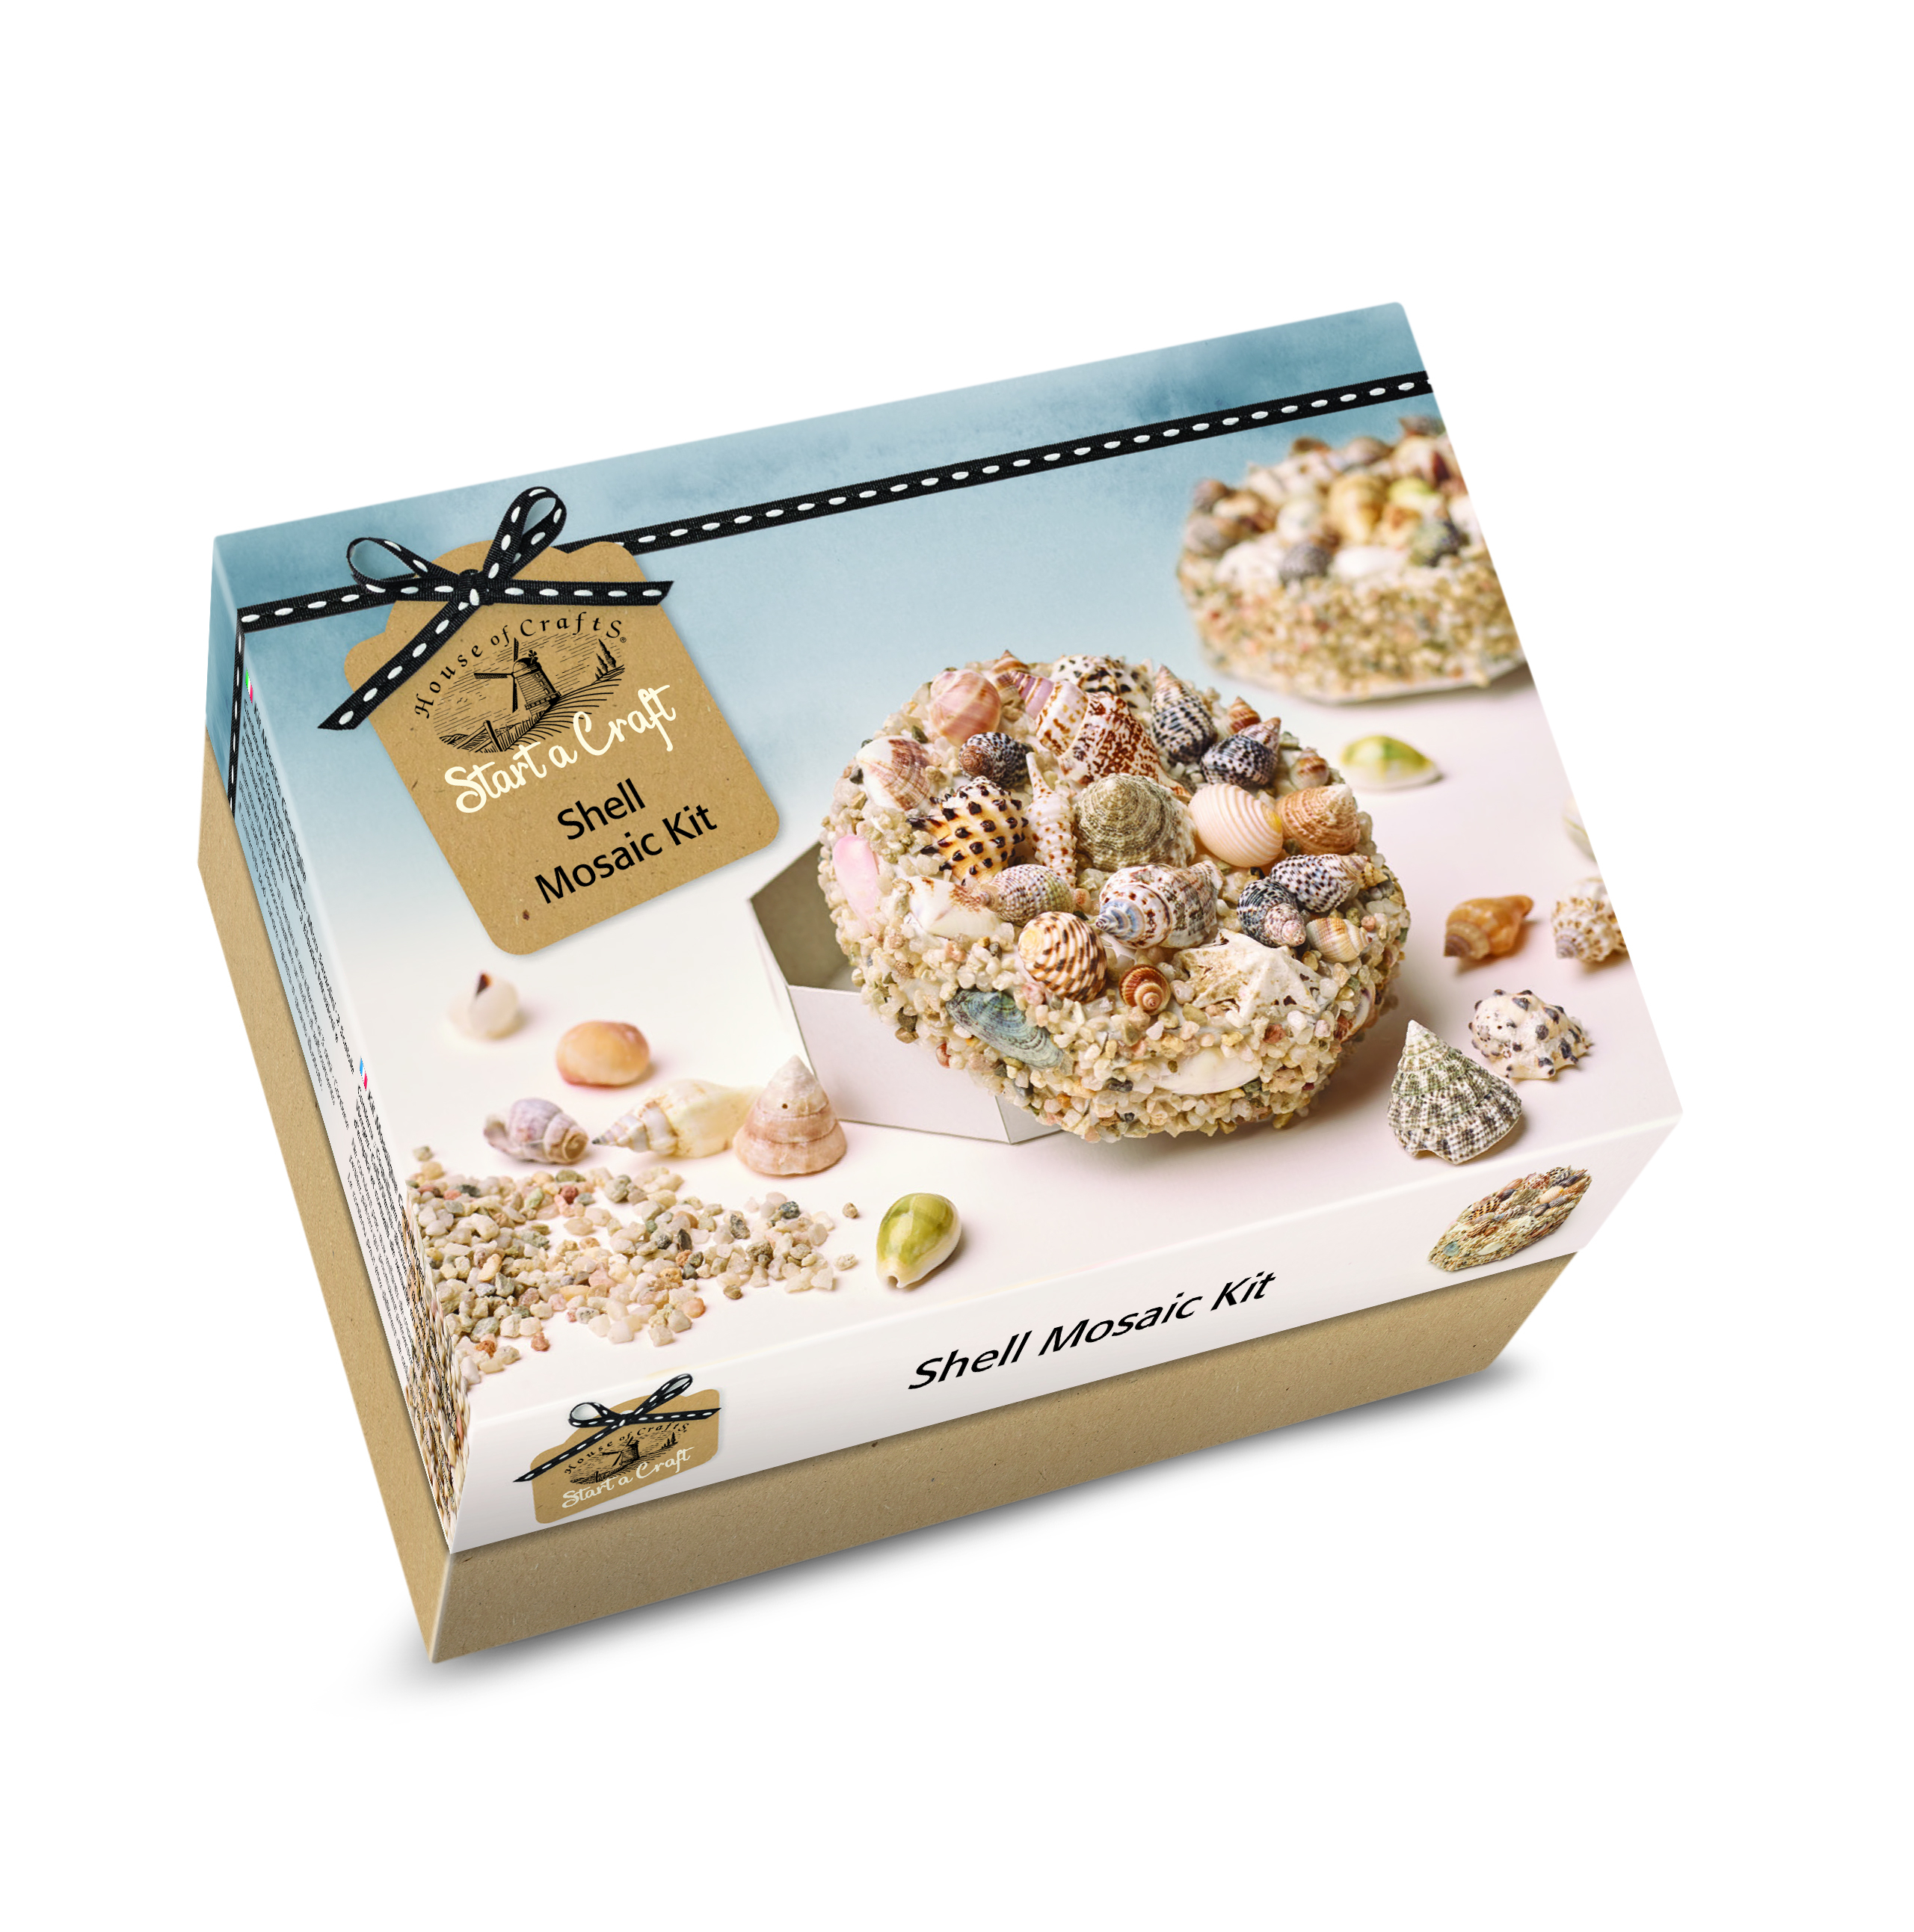 HOUSE OF CRAFTS SHELL MOSAIC KIT SC030